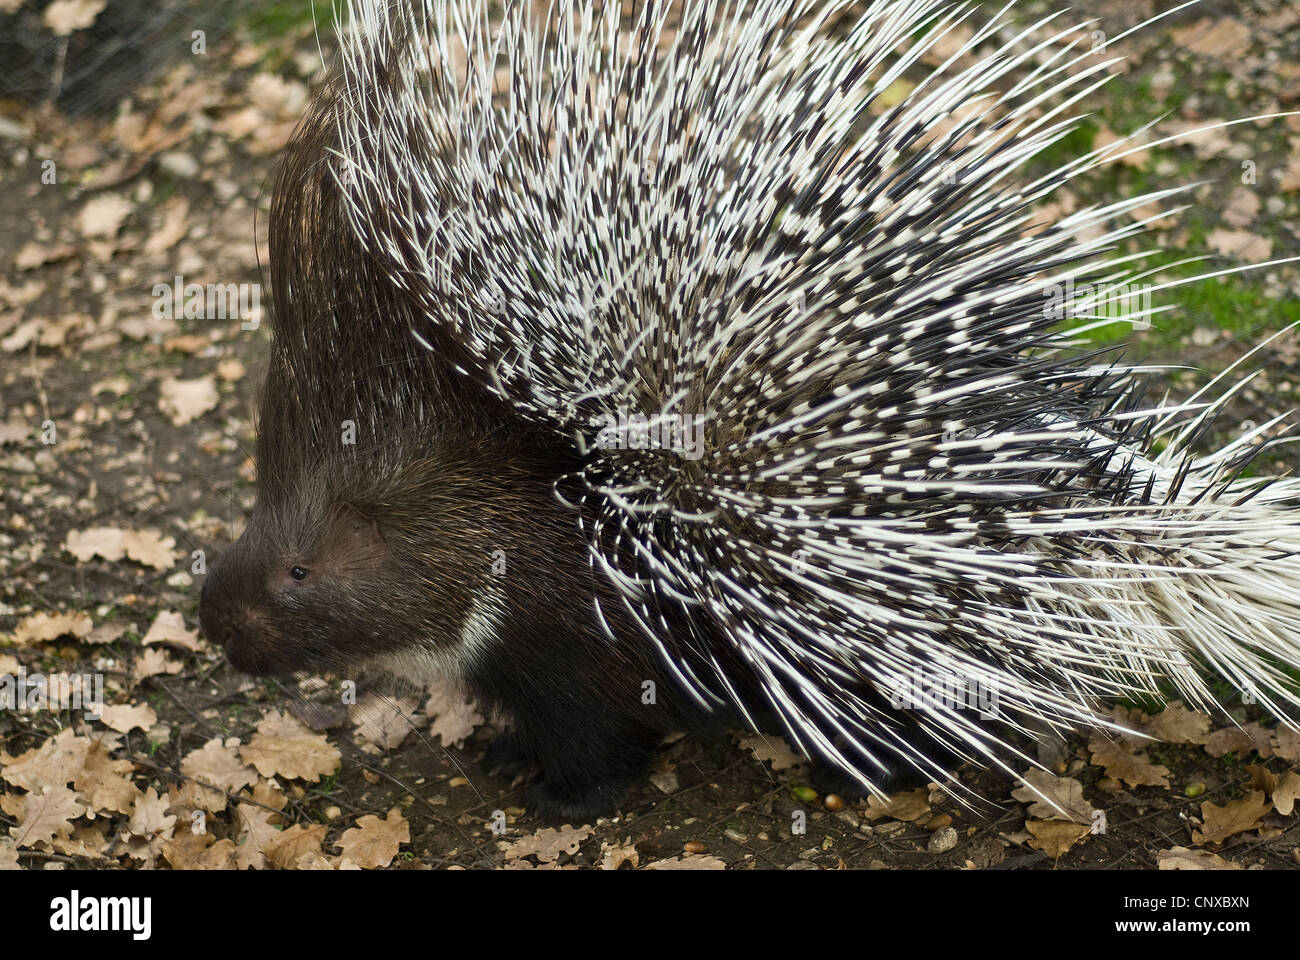 North African crested porcupine Hystrix cristata, Hystricidae, Mammalia. Nort Africa, Europe. - Stock Image